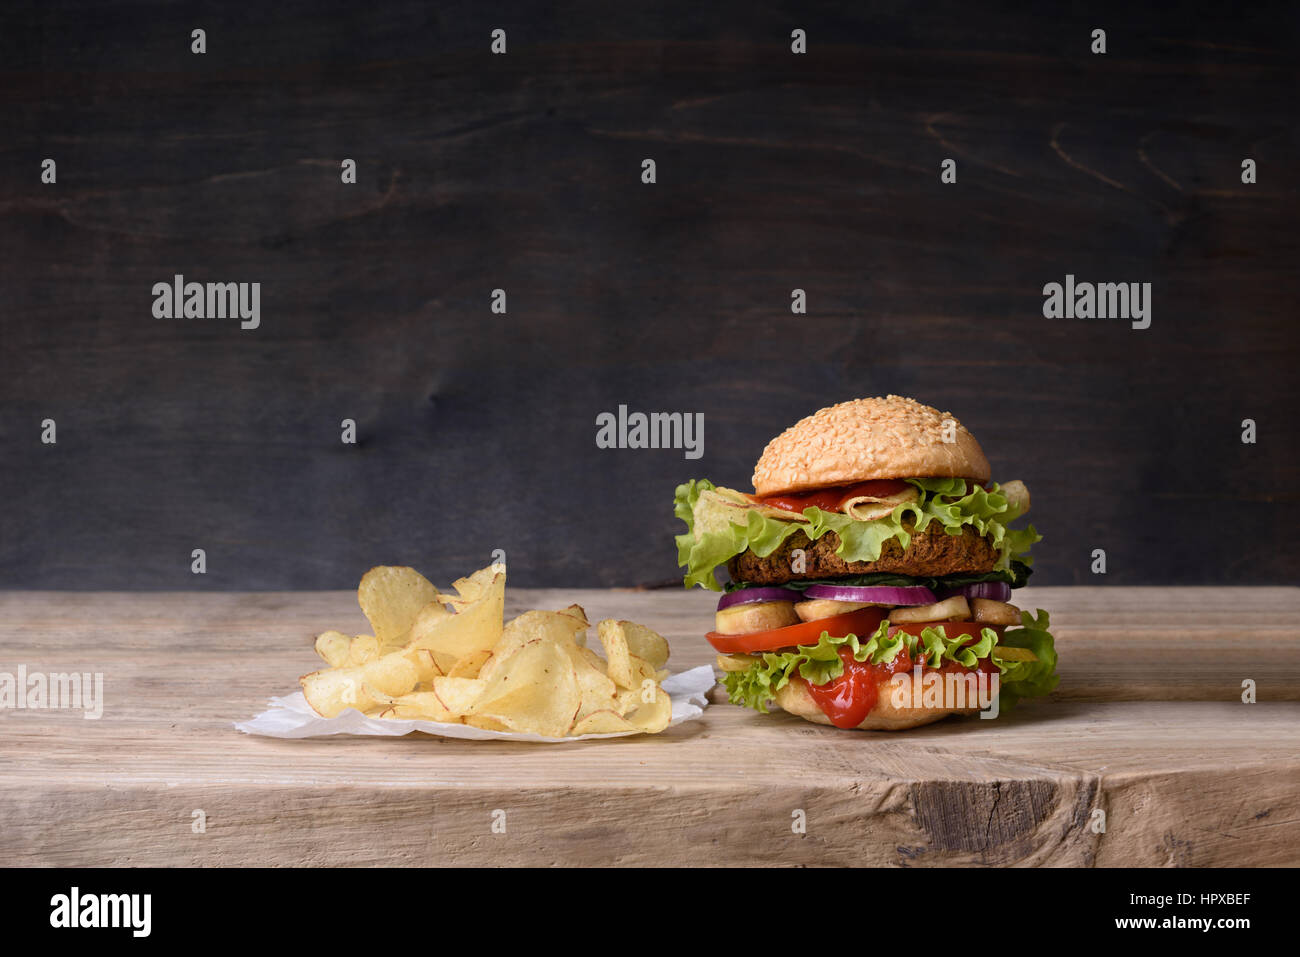 Delicious burger with beef, tomato, cheese, lettuce and potato chips on wooden counter. Copy space. - Stock Image